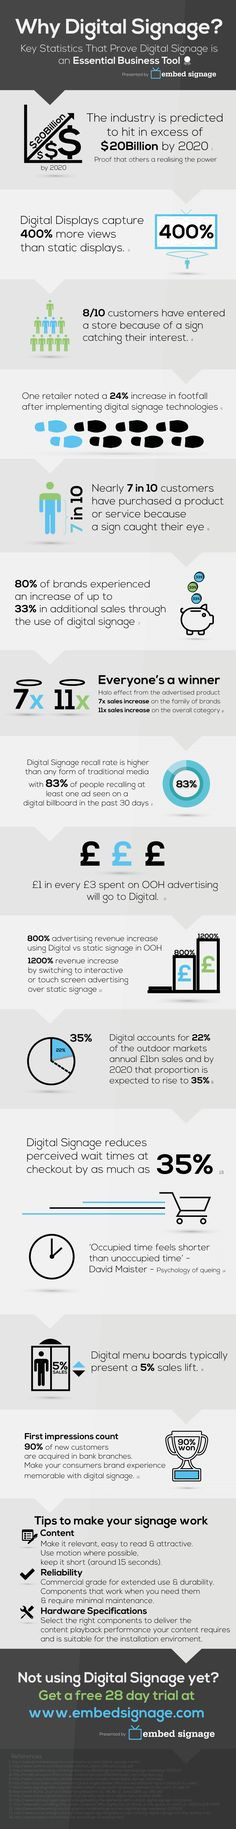 embed signage cloud based digital signage soloution why digital signage infographic